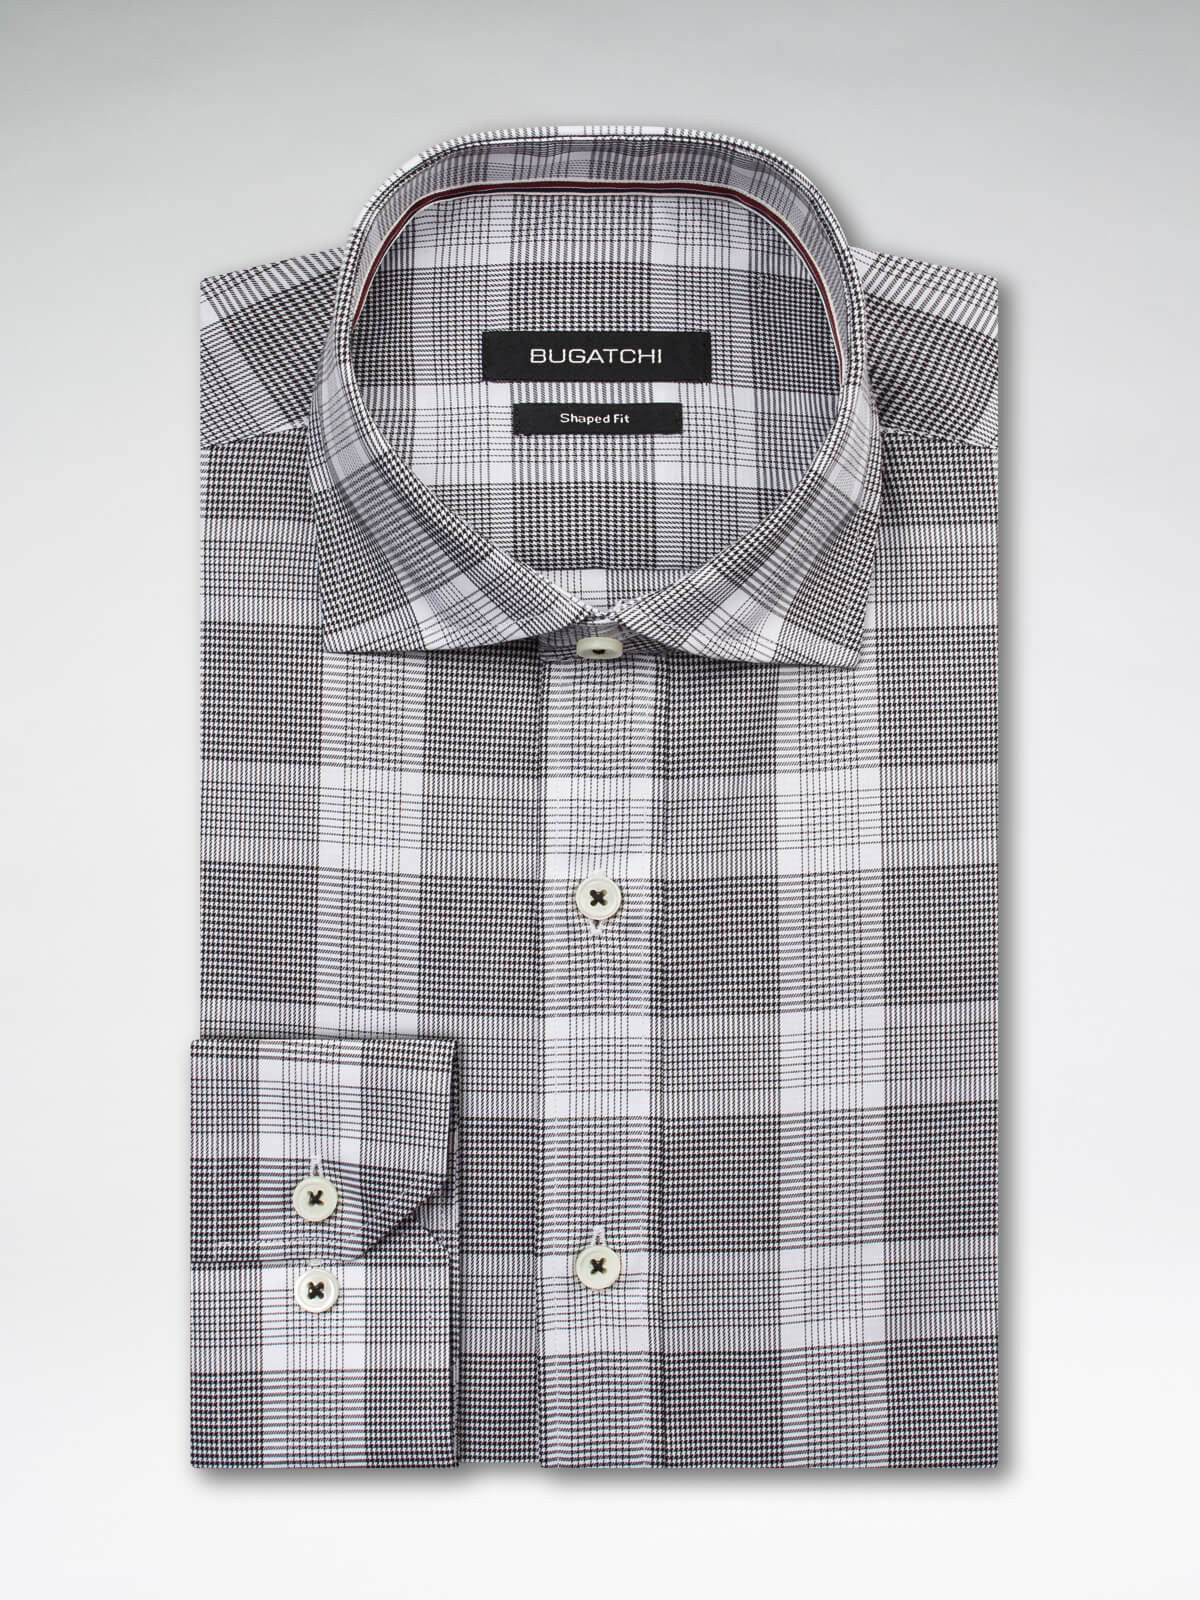 Bugatchi Black & White Plaid Classic Fit - Rainwater's Men's Clothing and Tuxedo Rental